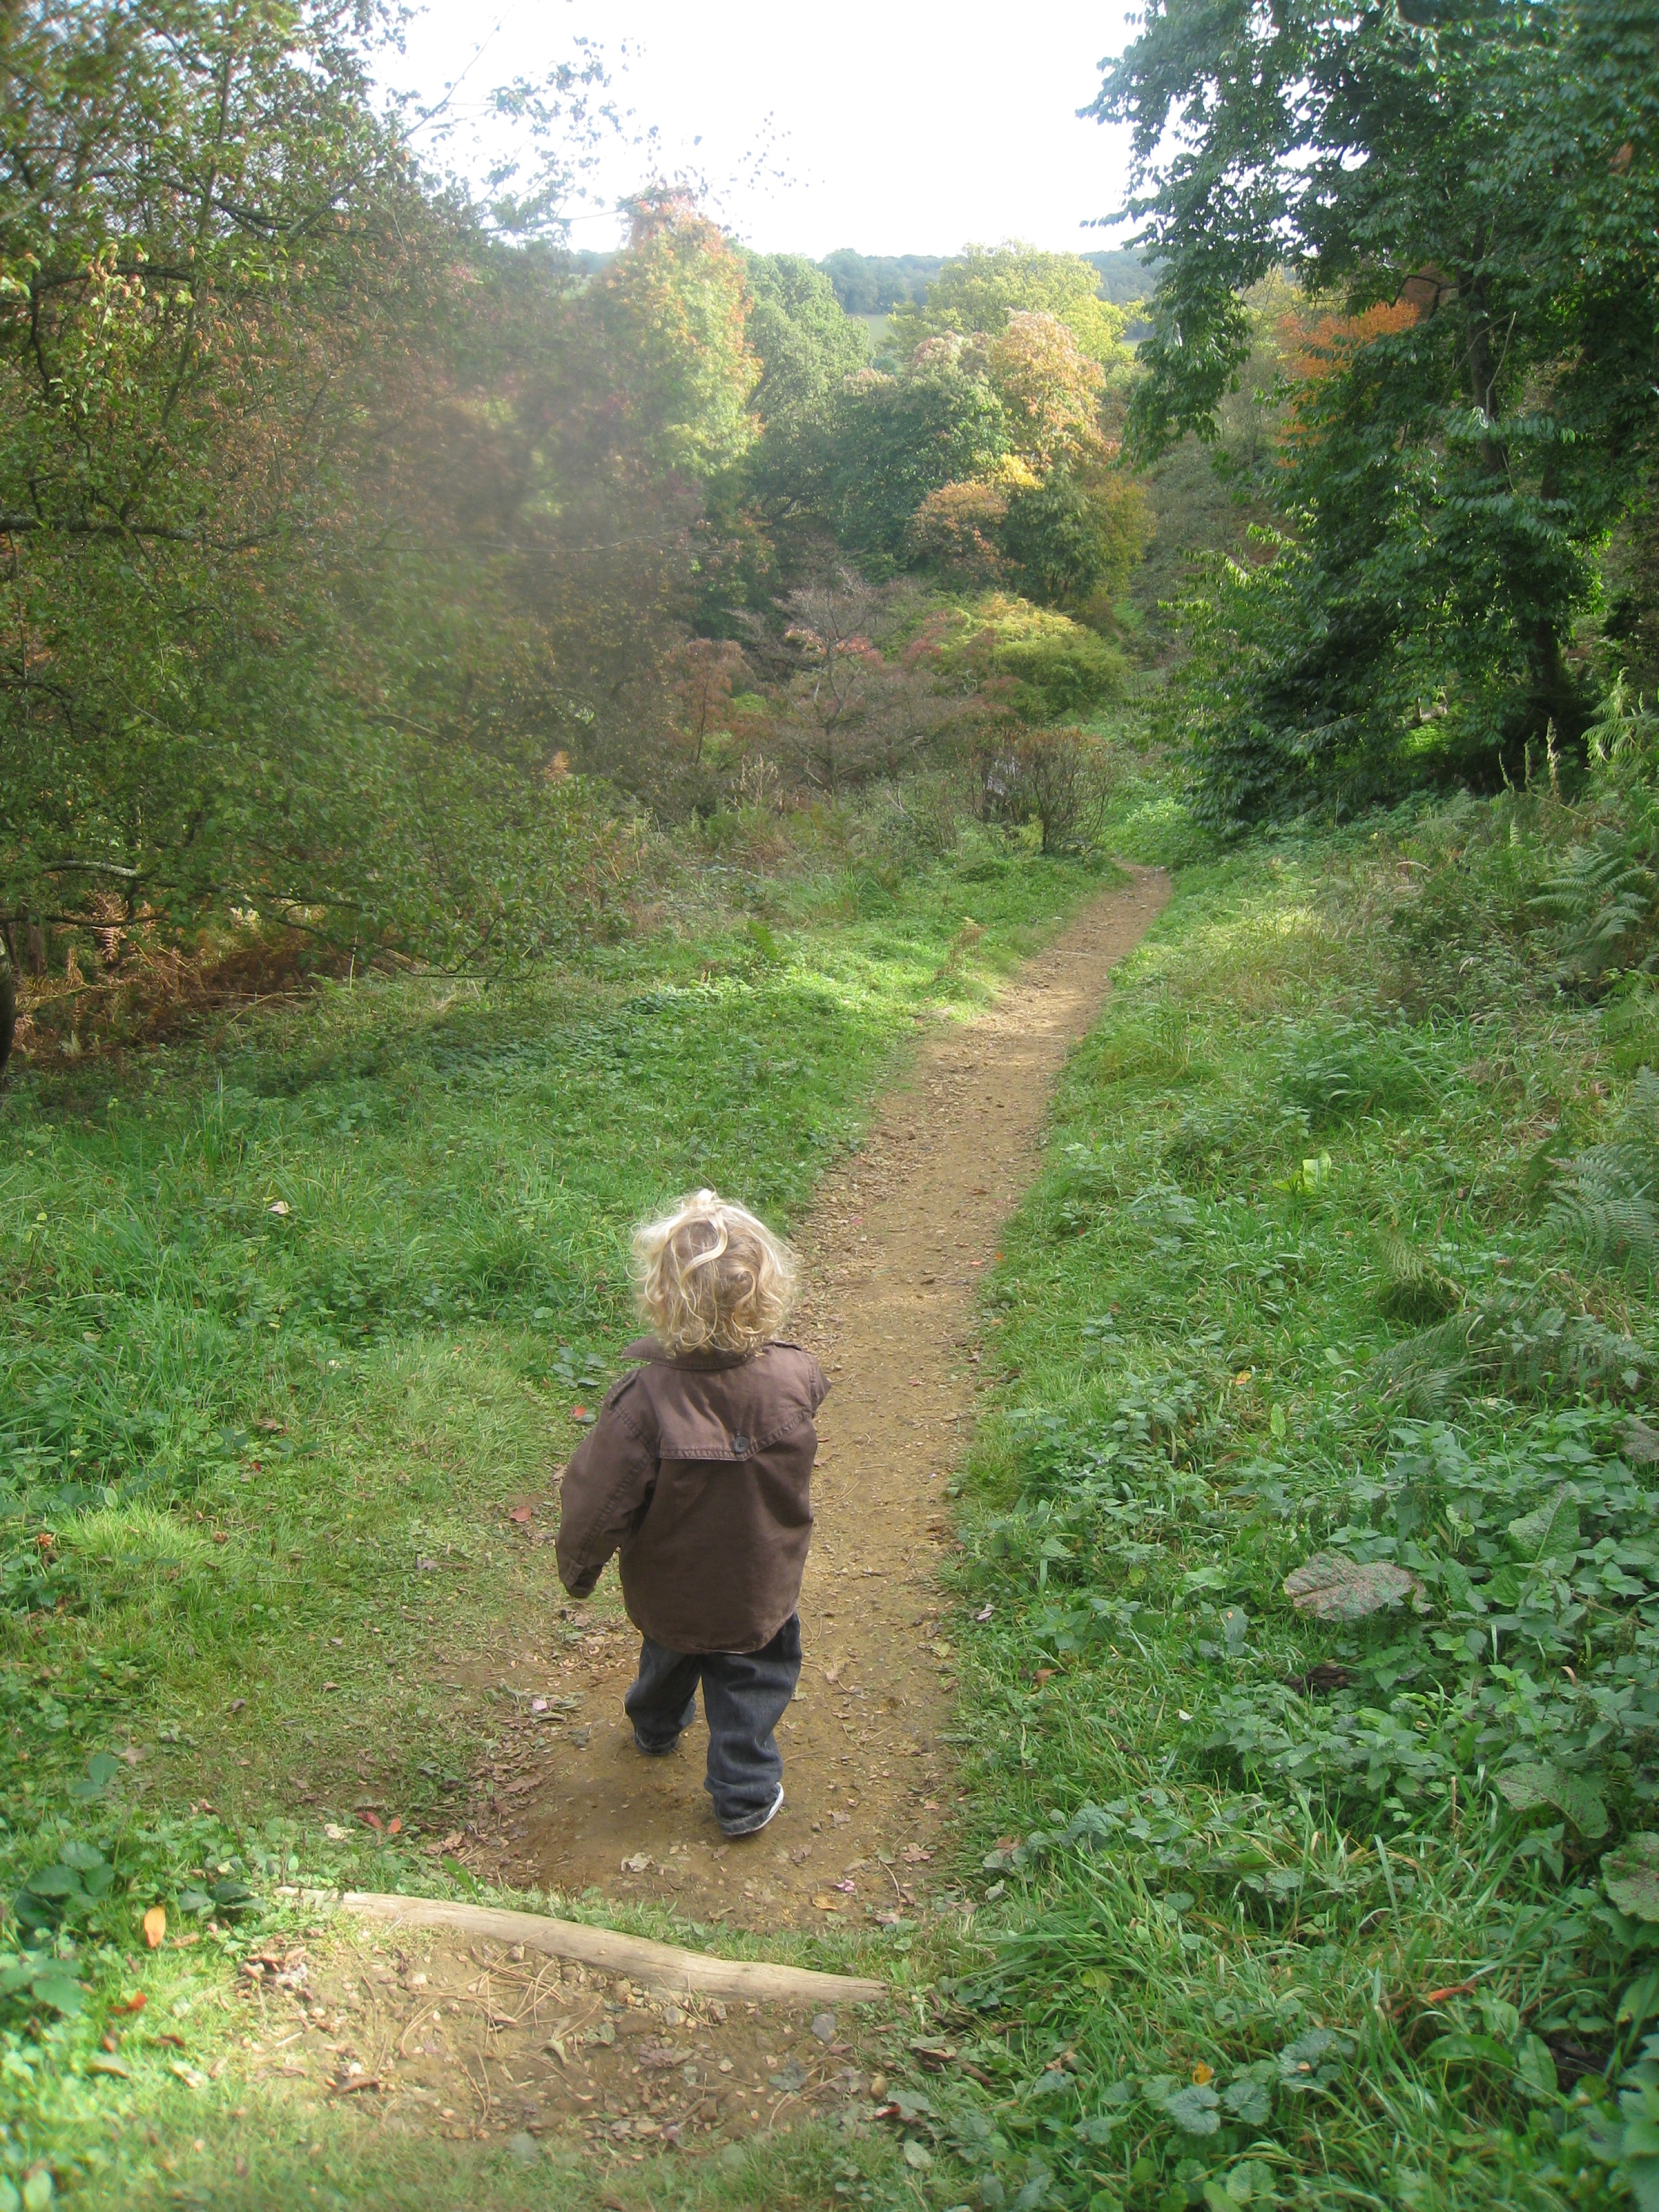 Parenting Children to Grow up Healthy